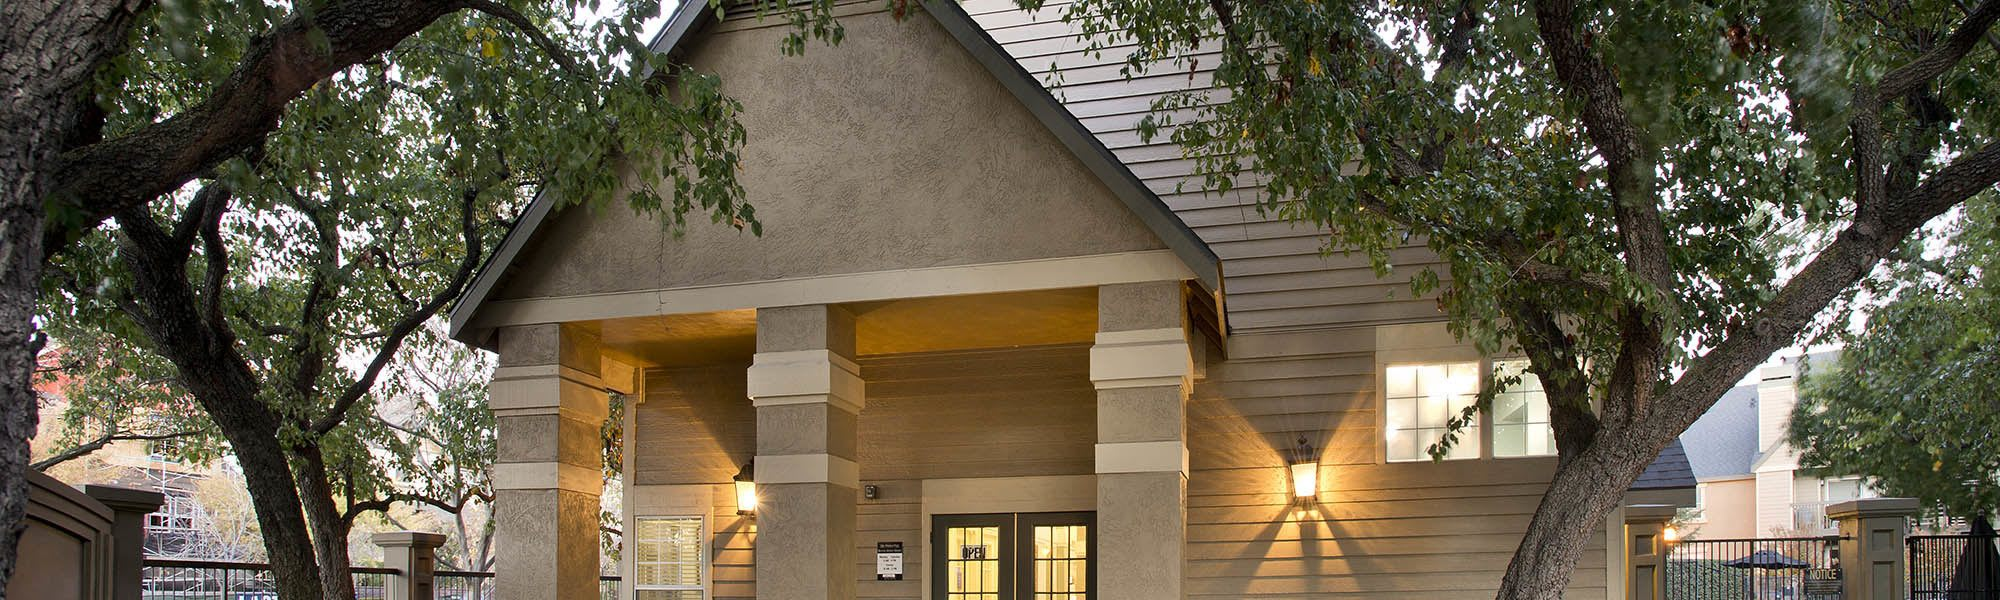 Learn about our neighborhood at Mill Springs Park Apartment Homes in Livermore, CA on our website